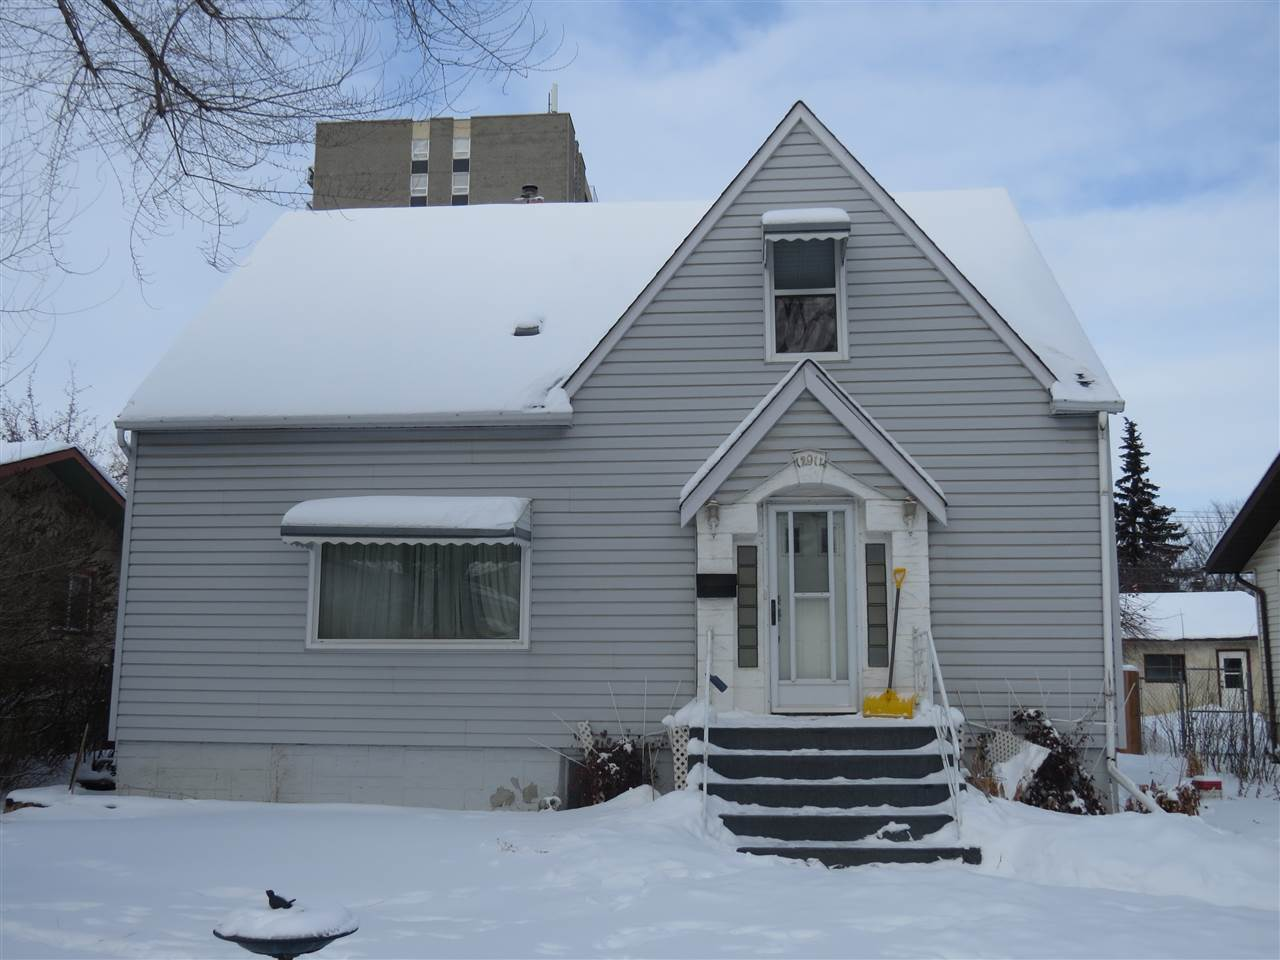 12914 112 Avenue NW, at $339,900